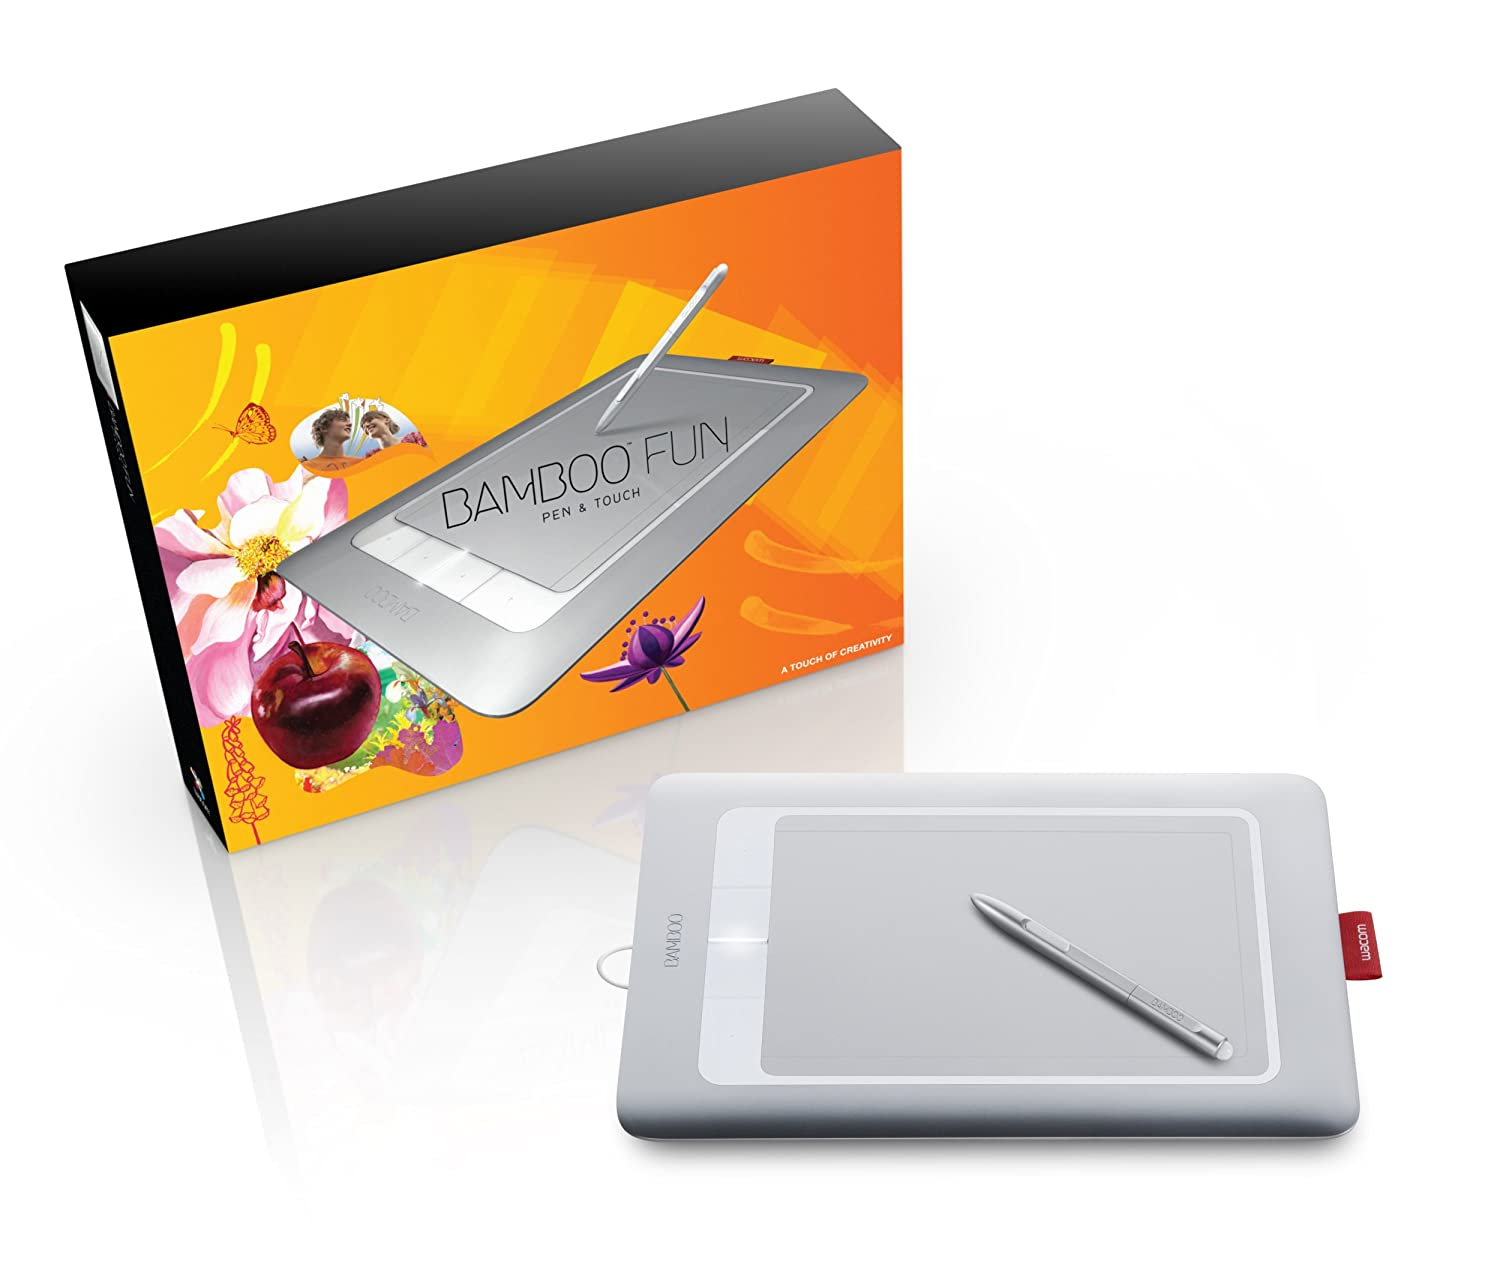 Works Terrific Value Tablet Only Wacom Graphics Tablet Bamboo Fun Drawing Cte-450 Black